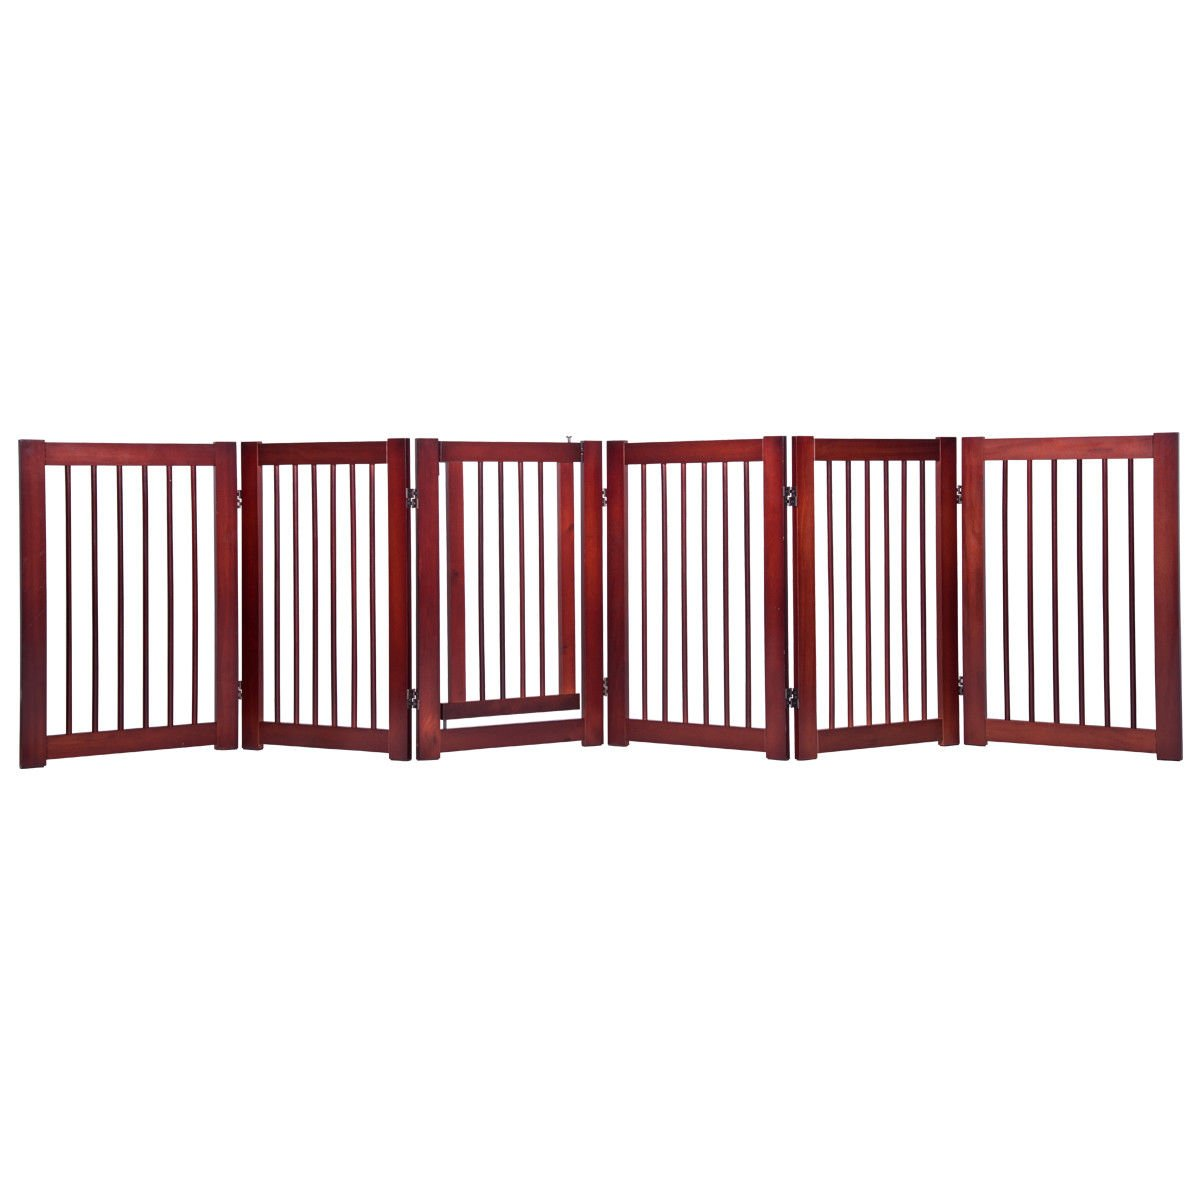 Giantex 30 Configurable Folding Free Standing Panel Wood Pet Dog Safety Fence w Gate 121 W